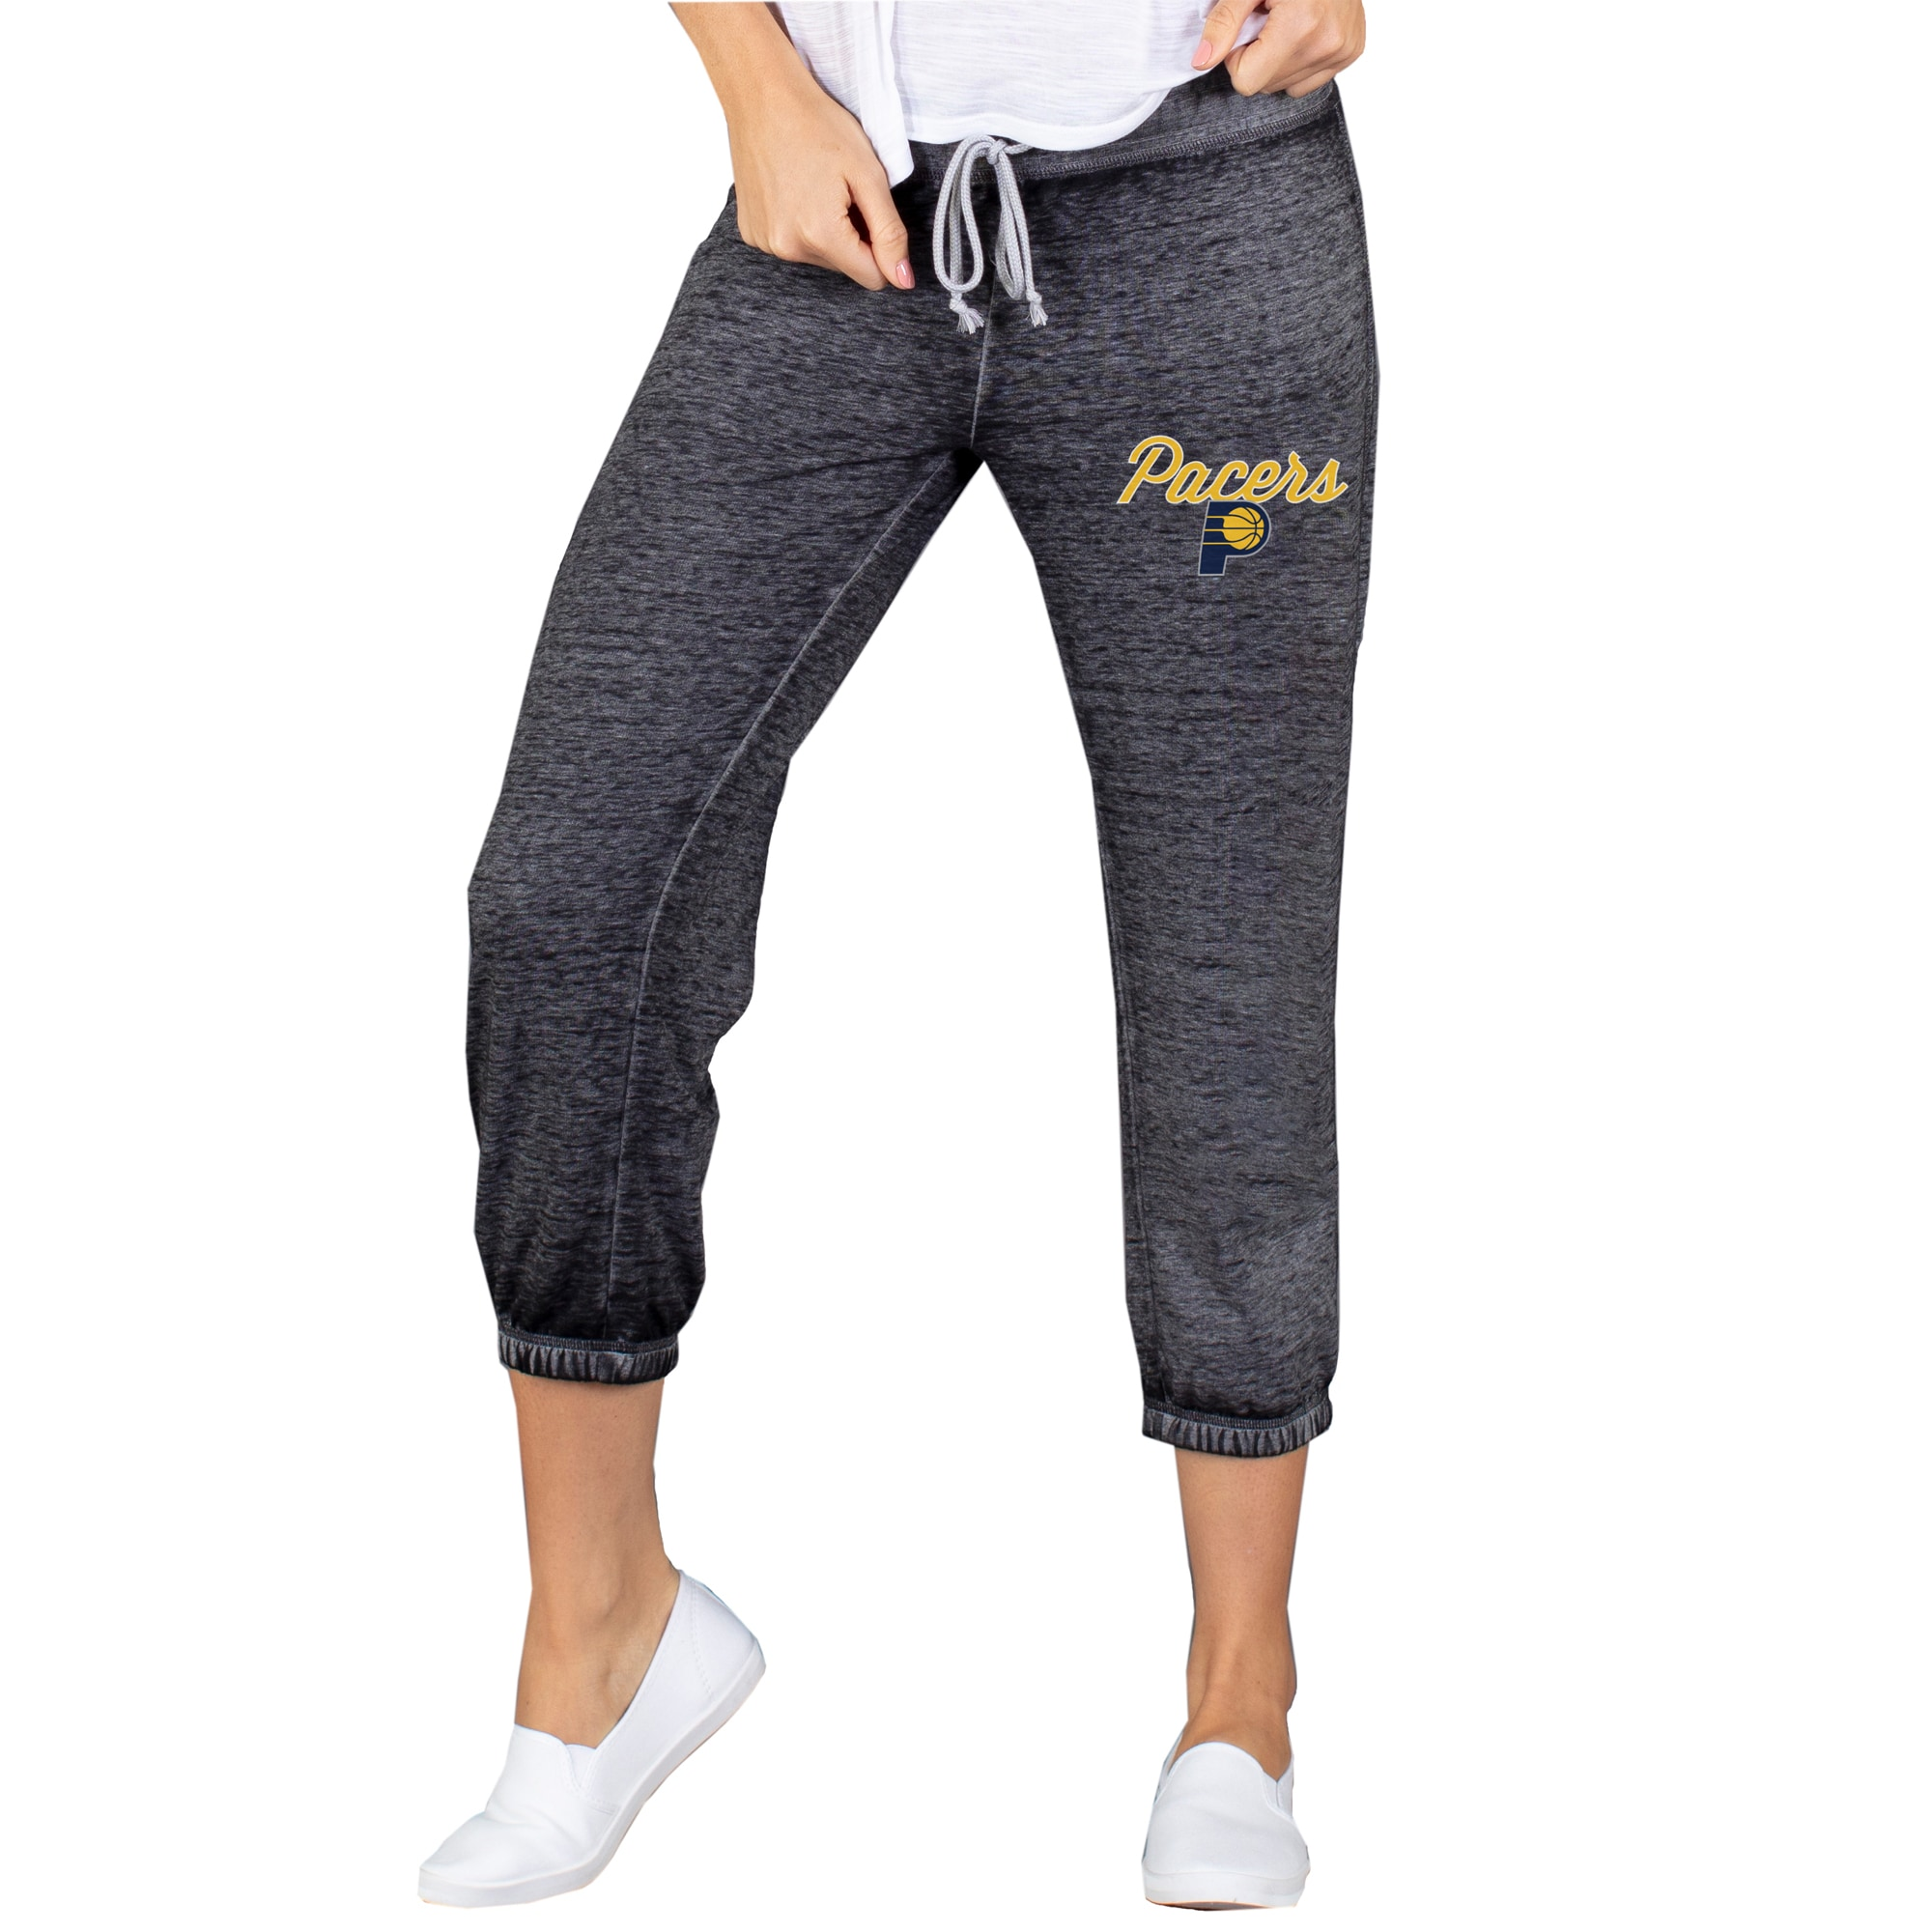 Indiana Pacers Concepts Sport Women's Capri Knit Lounge Pants - Charcoal